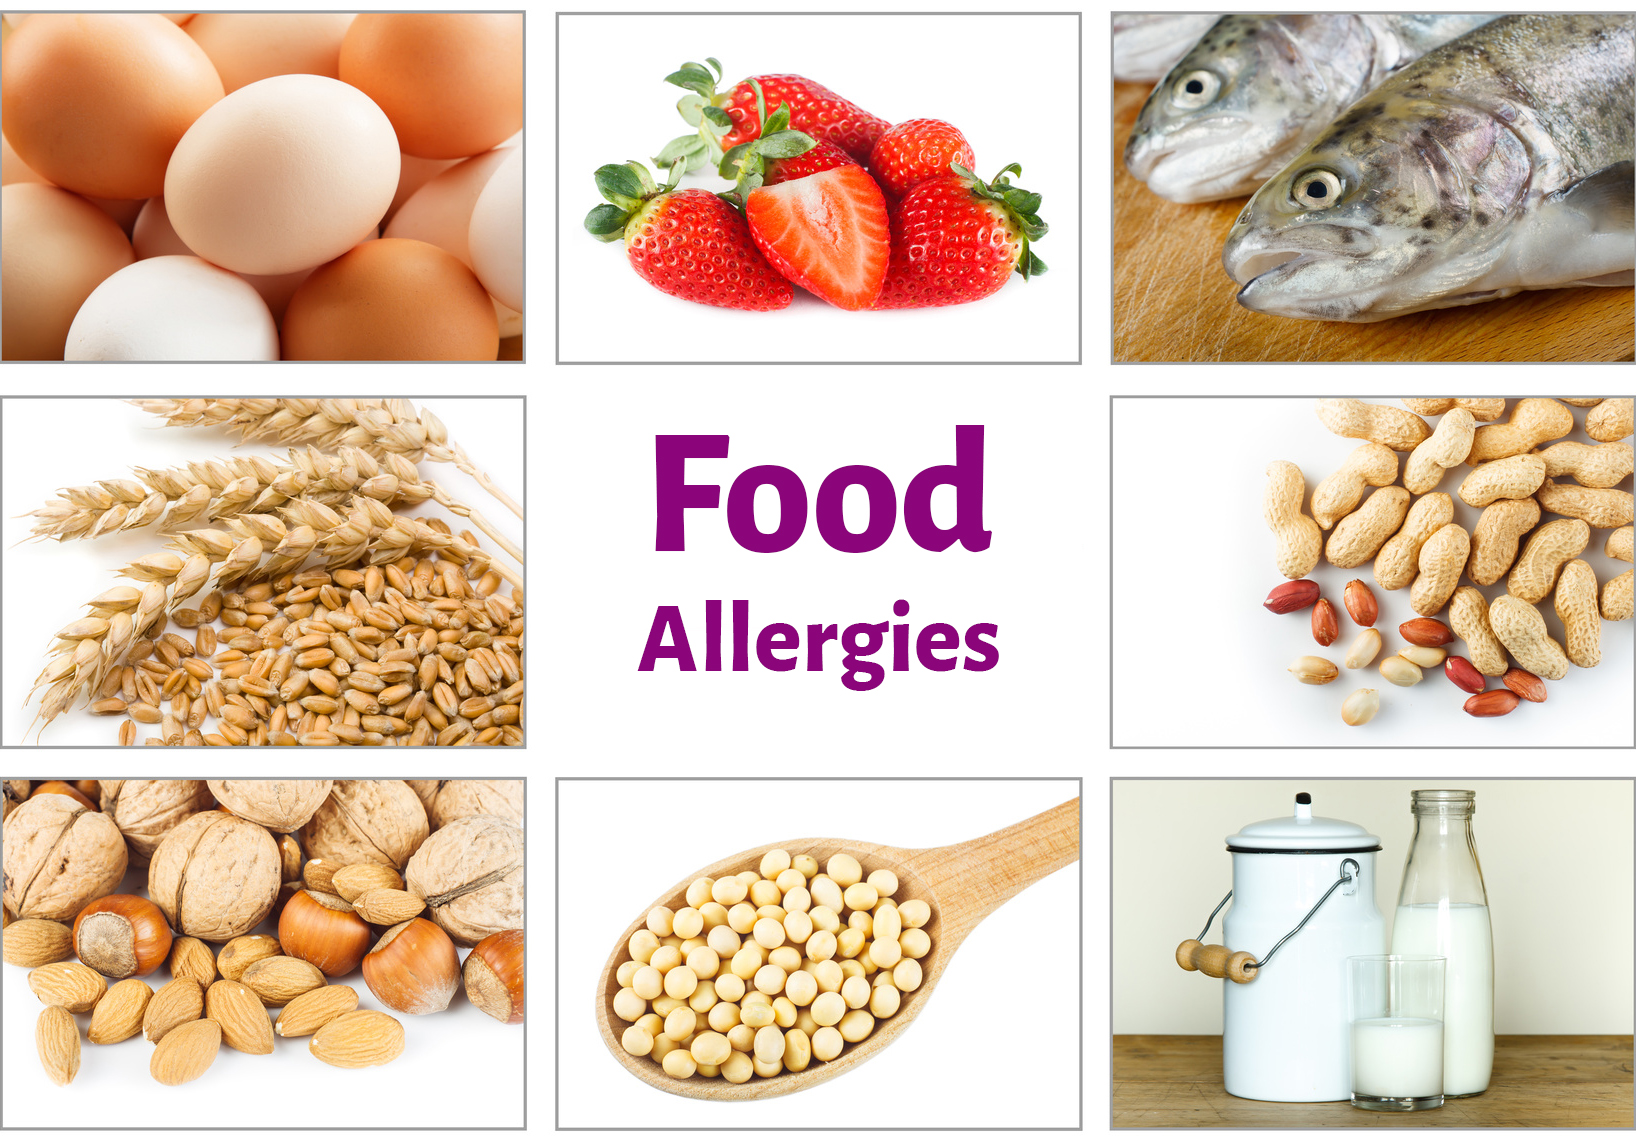 Can Food Allergies Cause Nausea